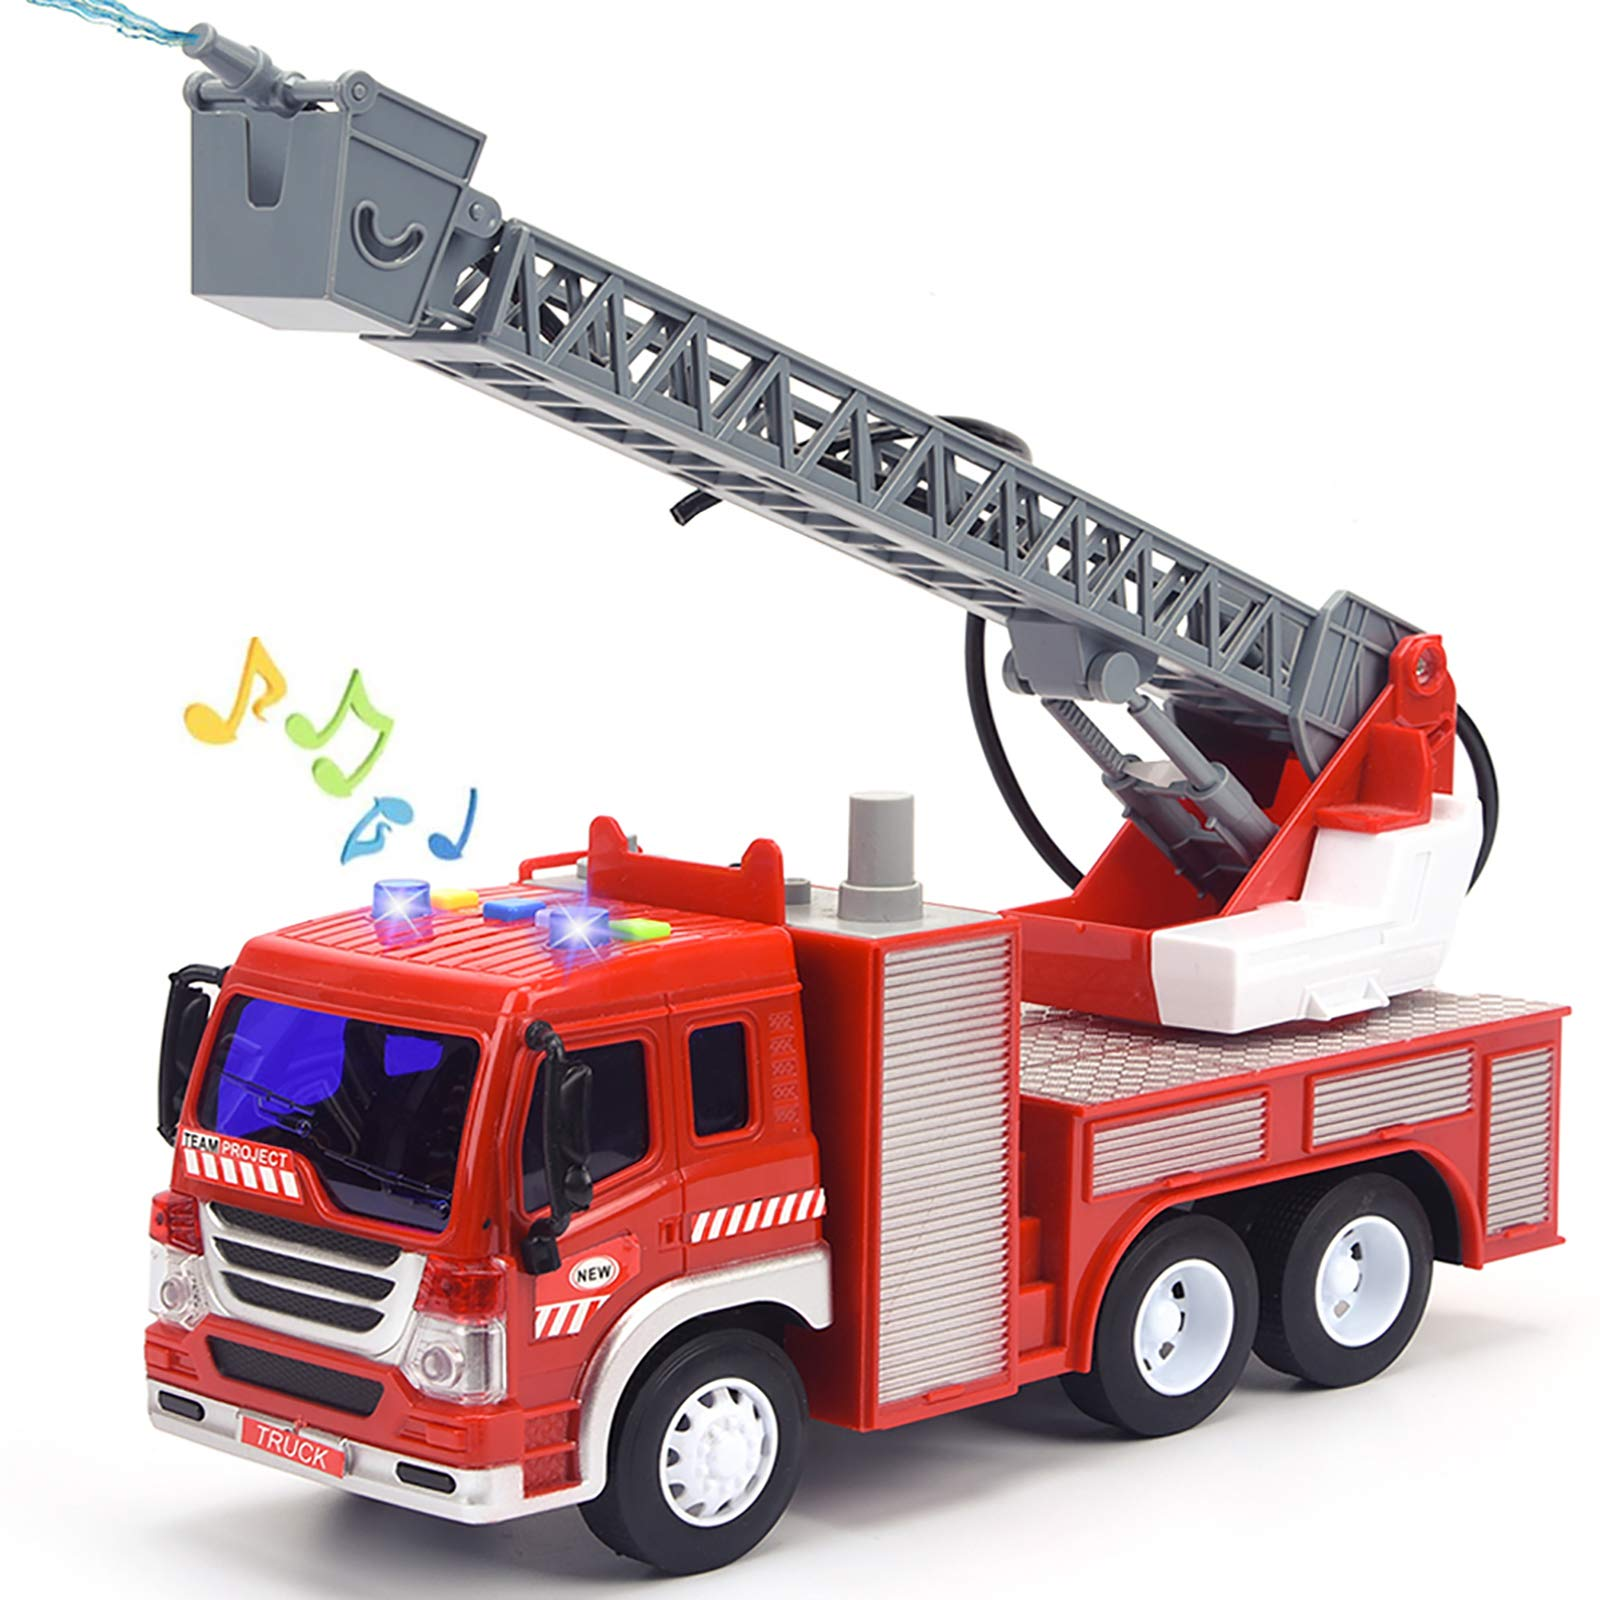 "Fire Truck Toy with Lights and Sounds, 10.5"" Friction Powered Car Fire Engine Truck with Water Pump, Sirens and Extending Ladder Firefighter Toy Truck for Toddler, 1:16 Scale Toy Car"